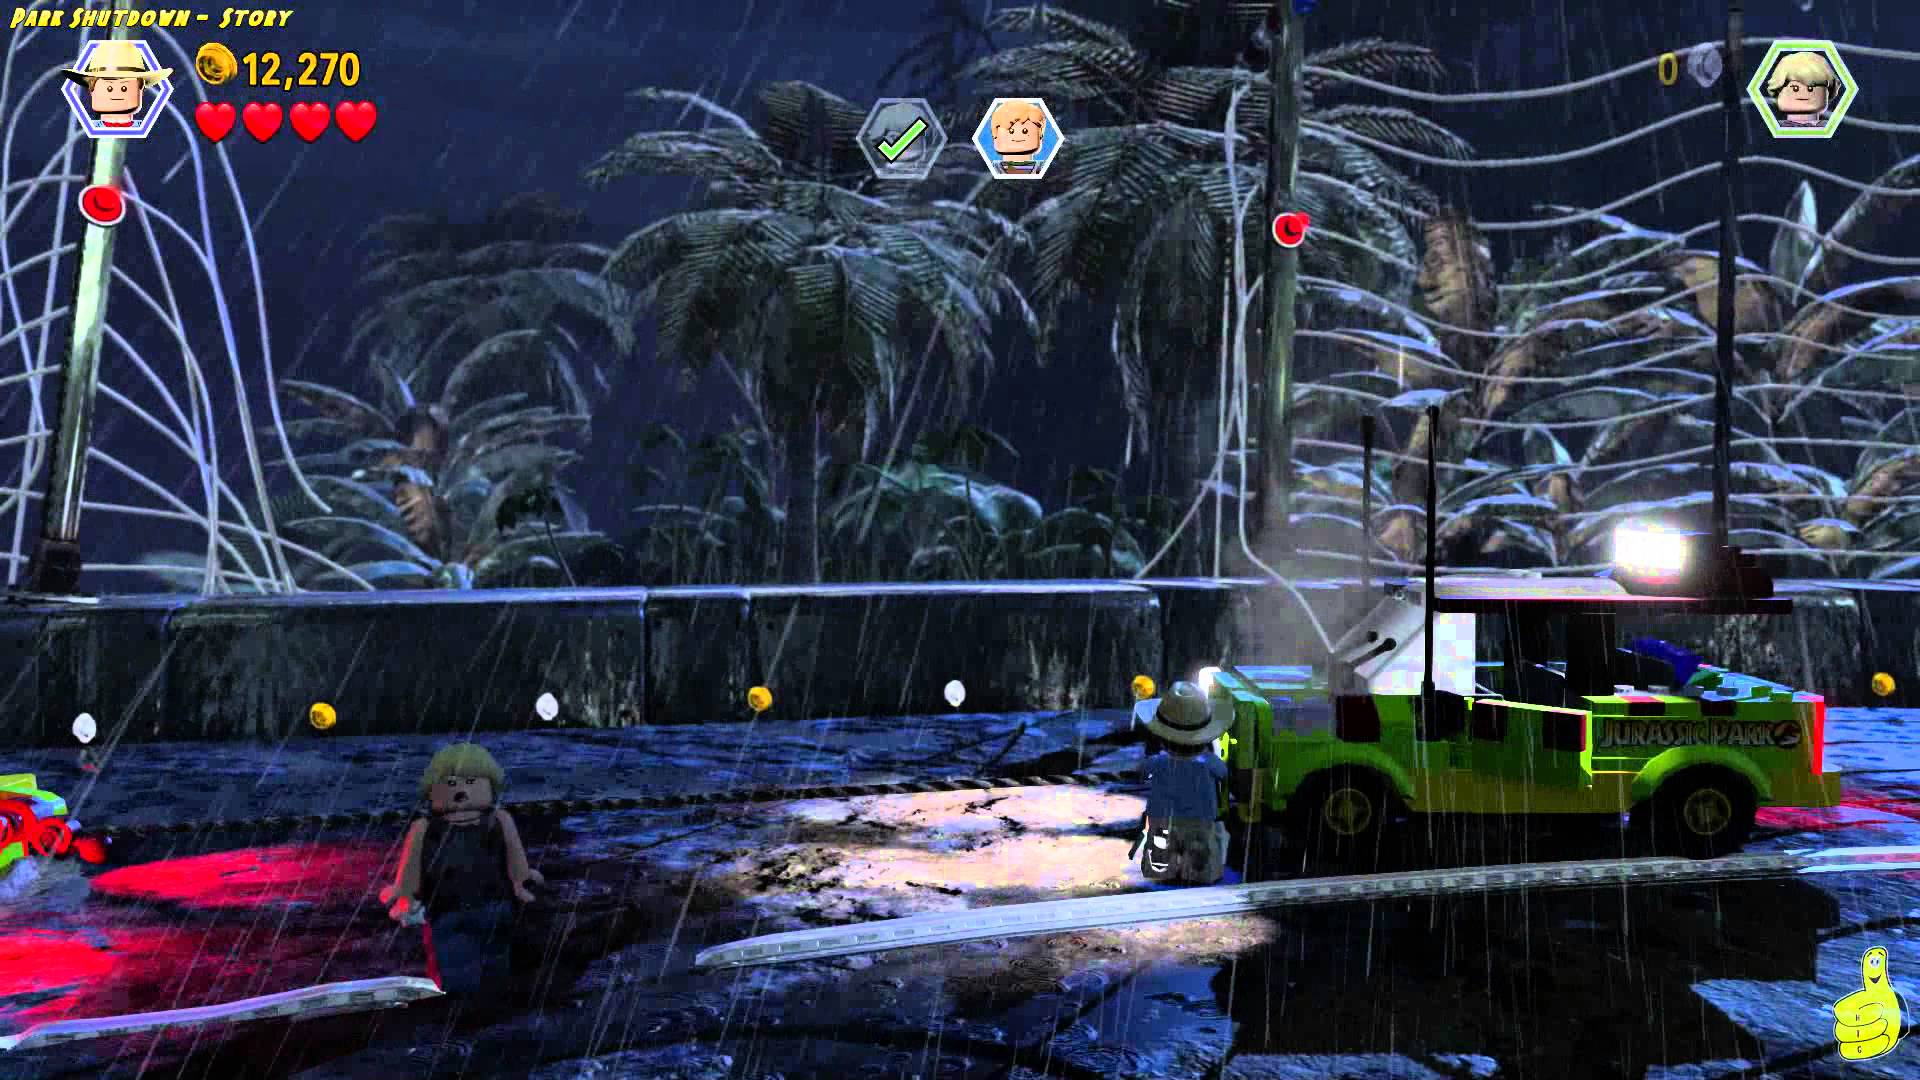 Lego Jurassic World: Level 3 STORY Objects in the Mirror Trophy/Achievement – HTG